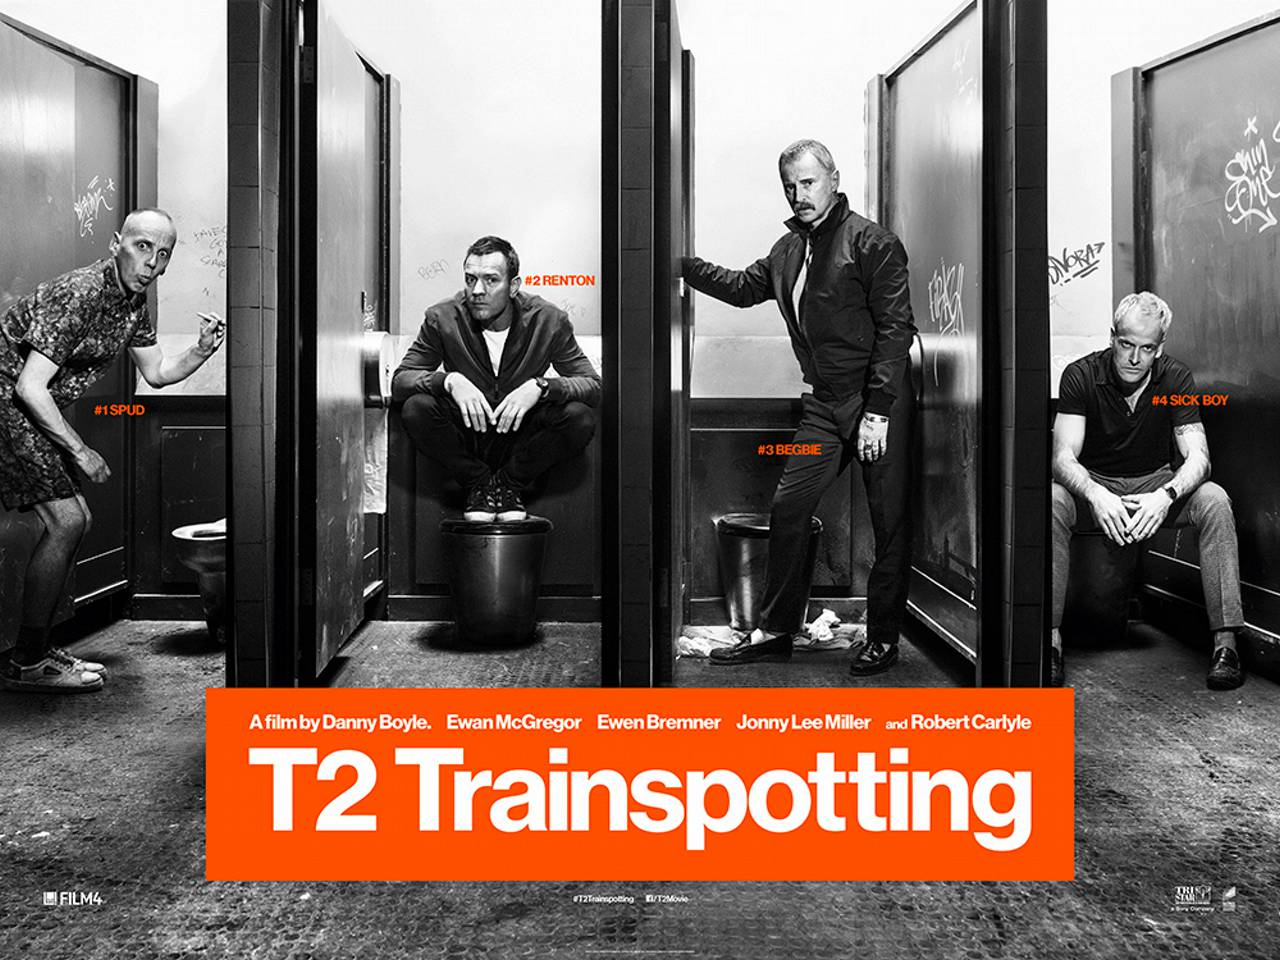 WATCH: 'T2 Trainspotting' Trailer and Poster Arrive